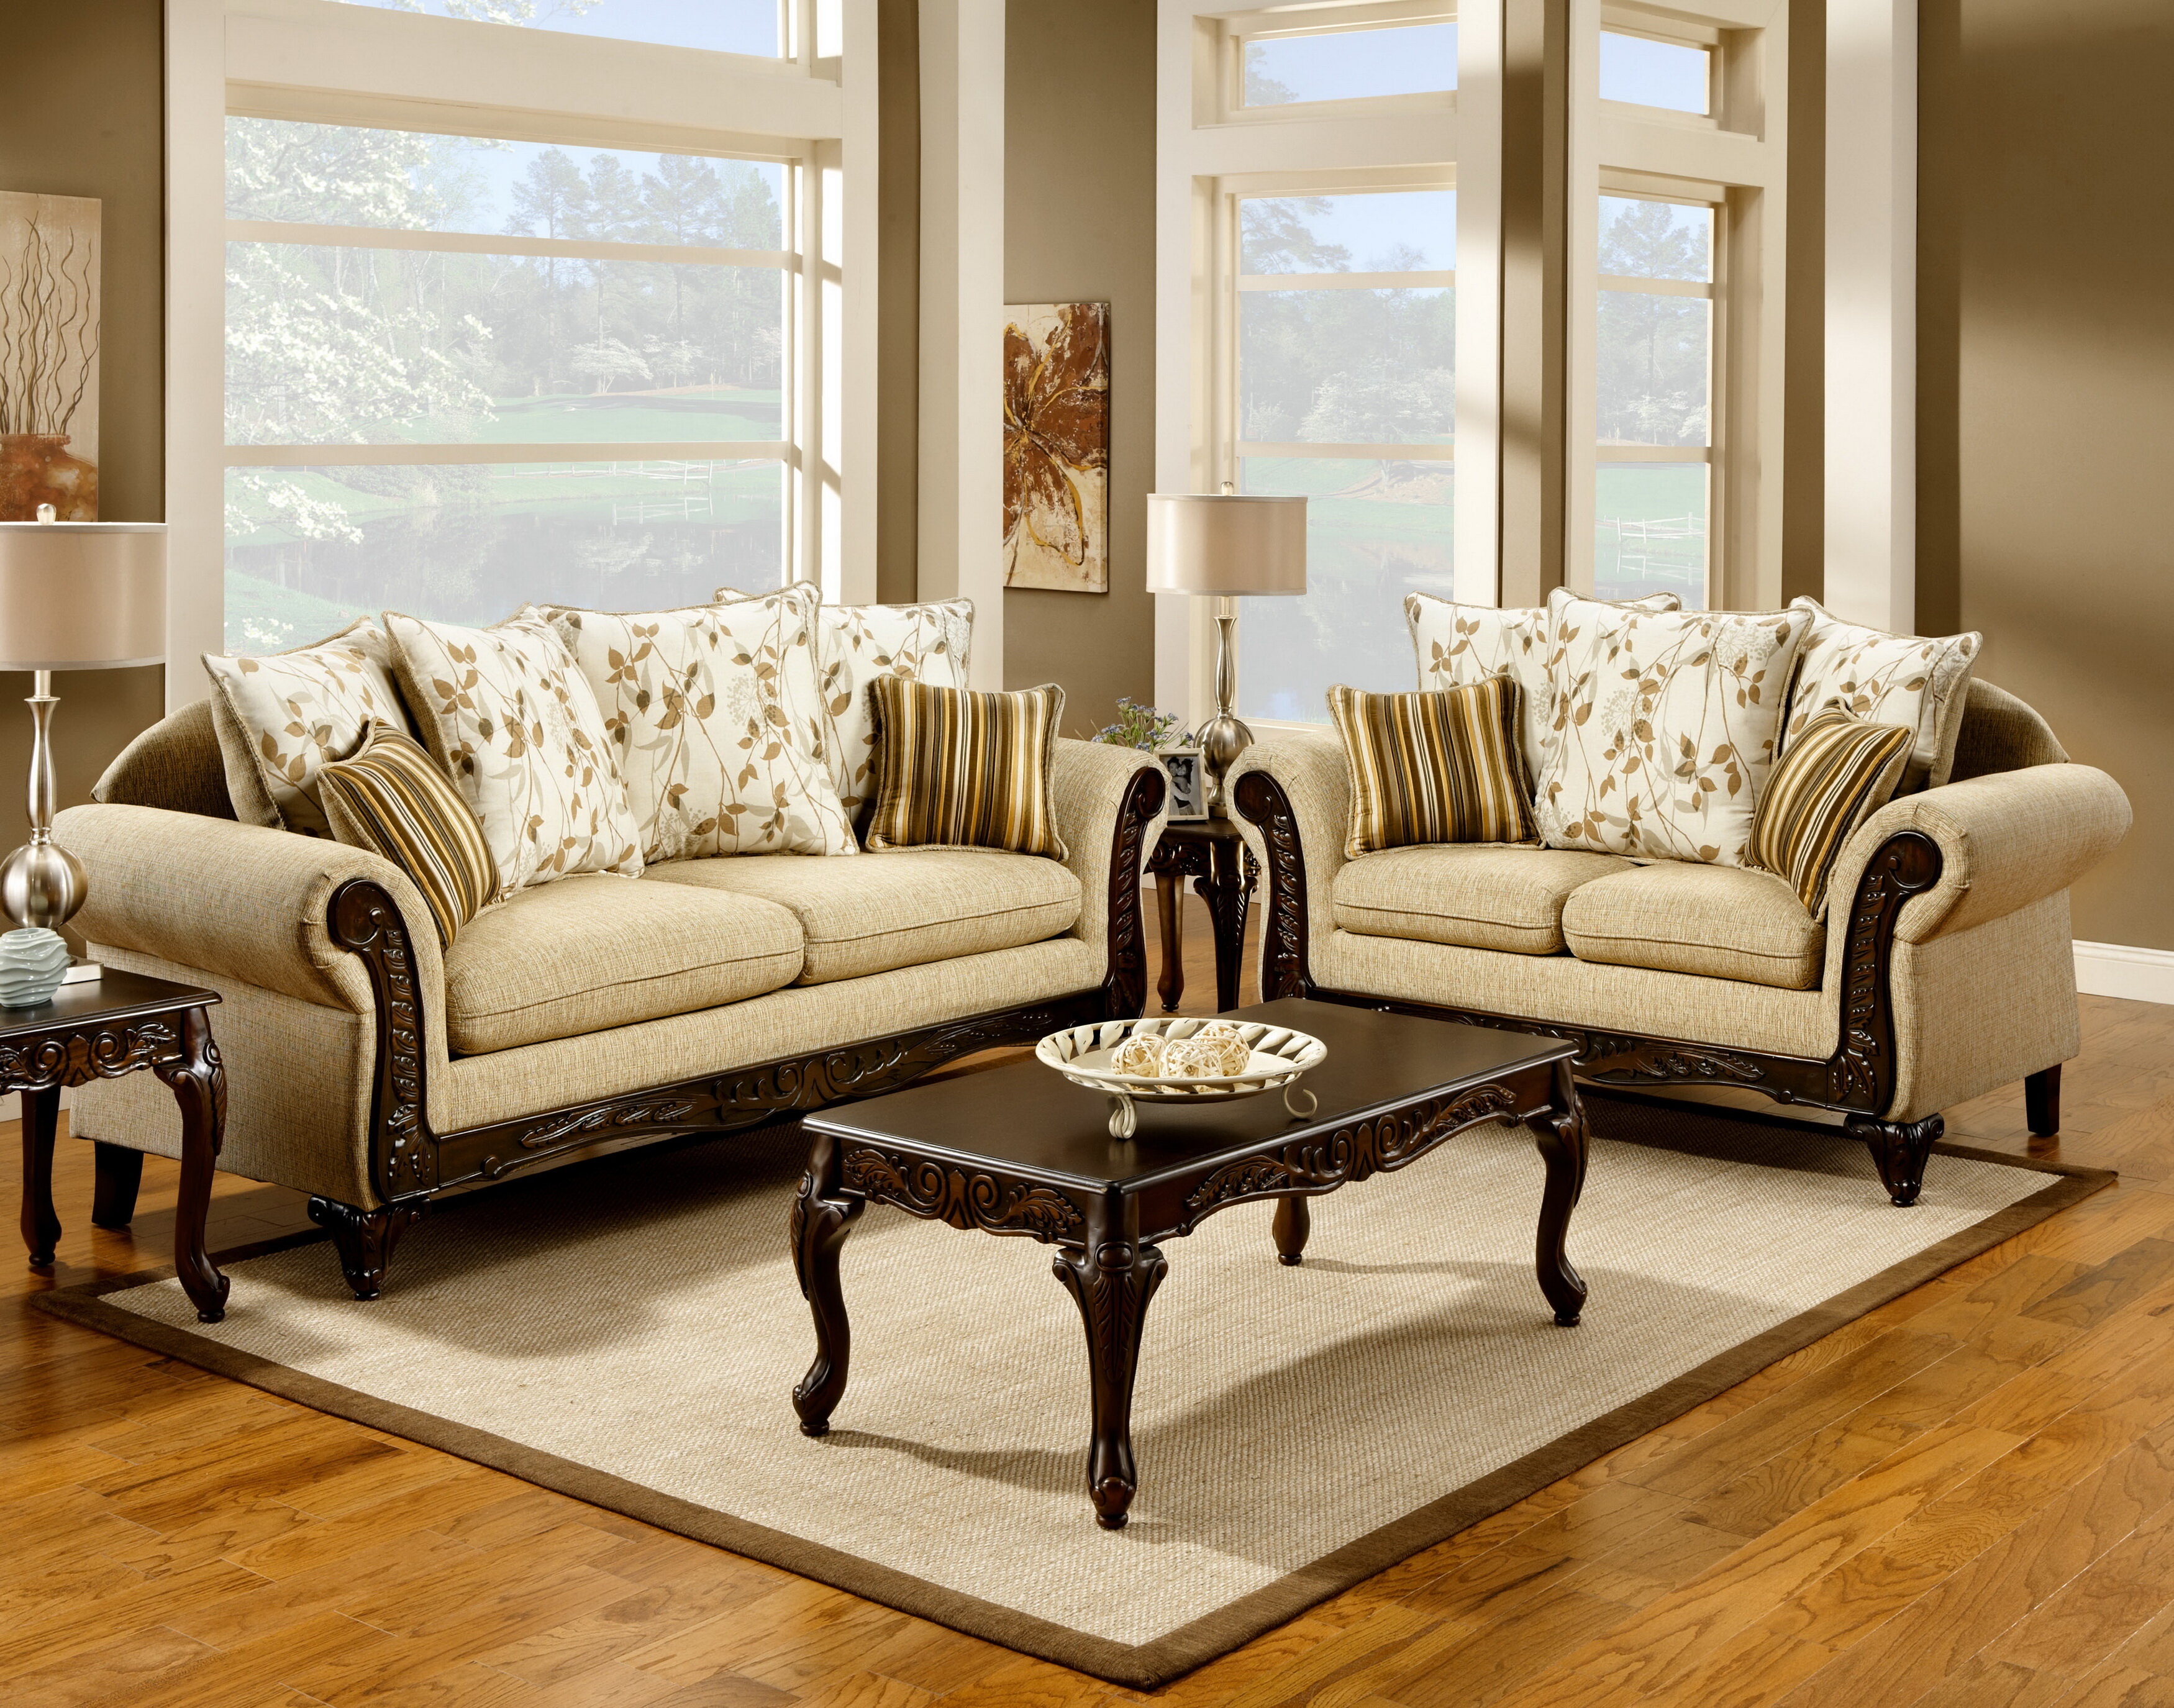 Hokku designs aveline configurable living room set reviews wayfair